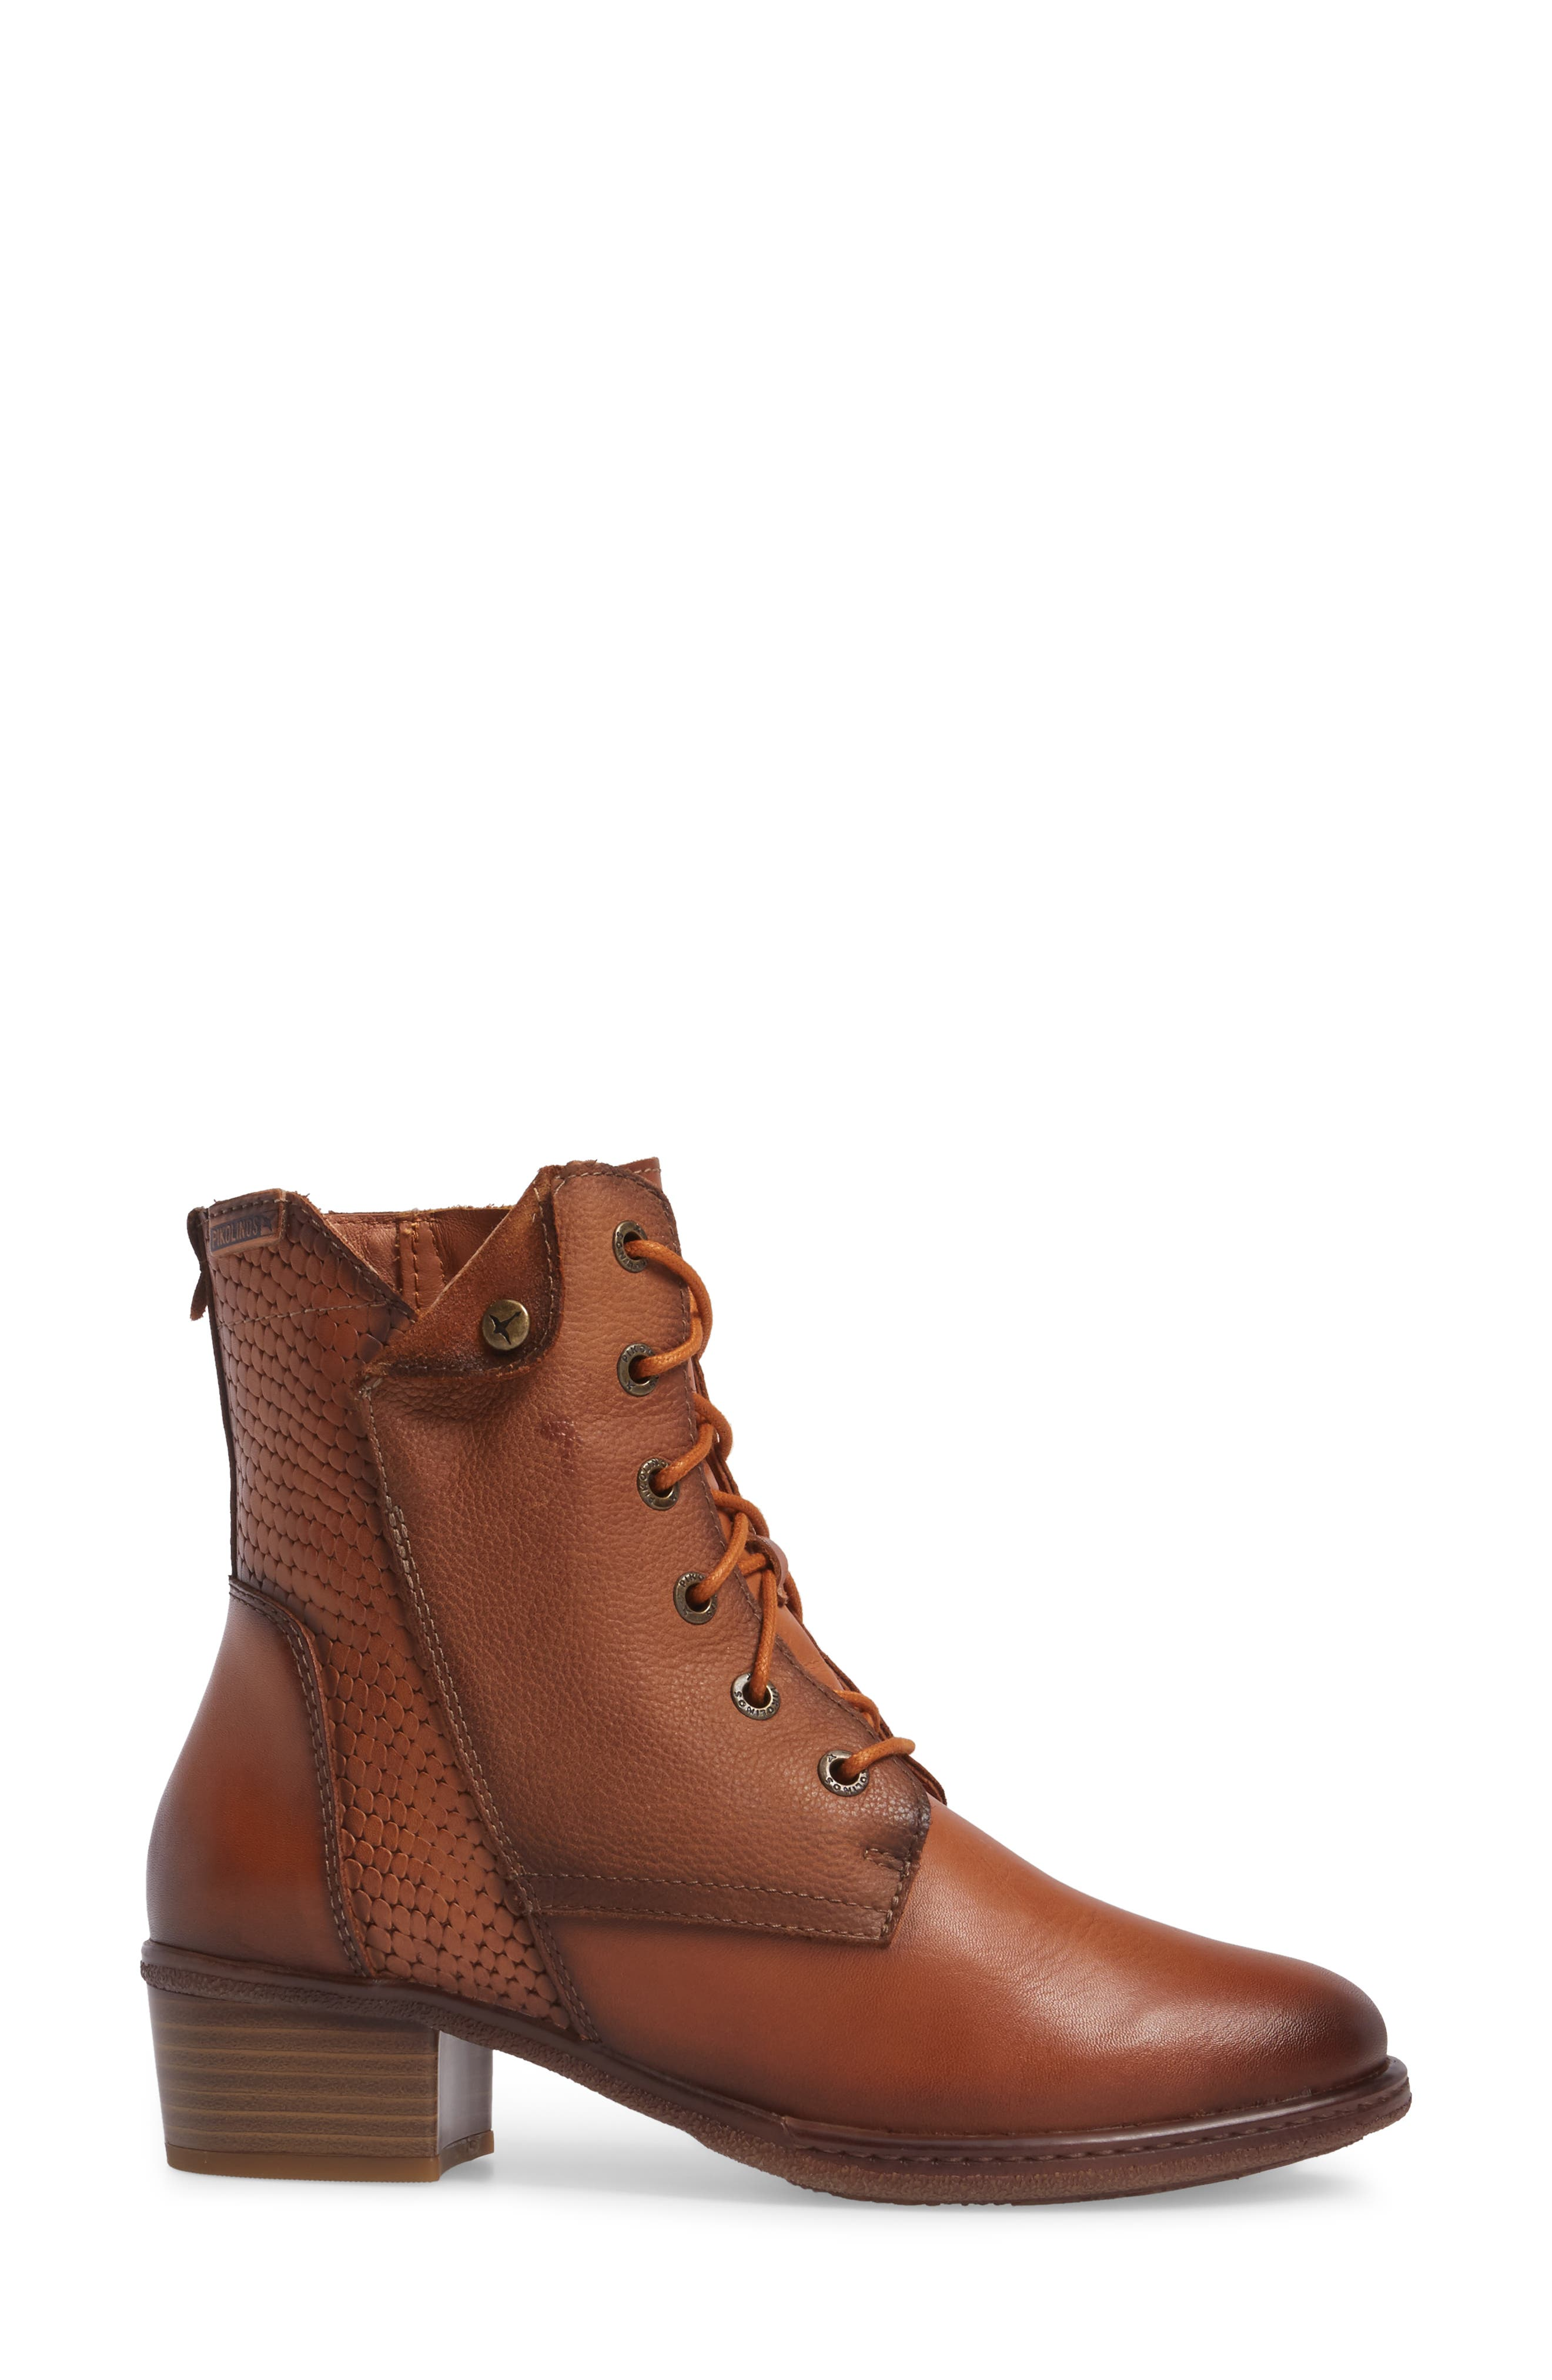 Zaragoza Water Resistant Lace-Up Boot,                             Alternate thumbnail 3, color,                             207